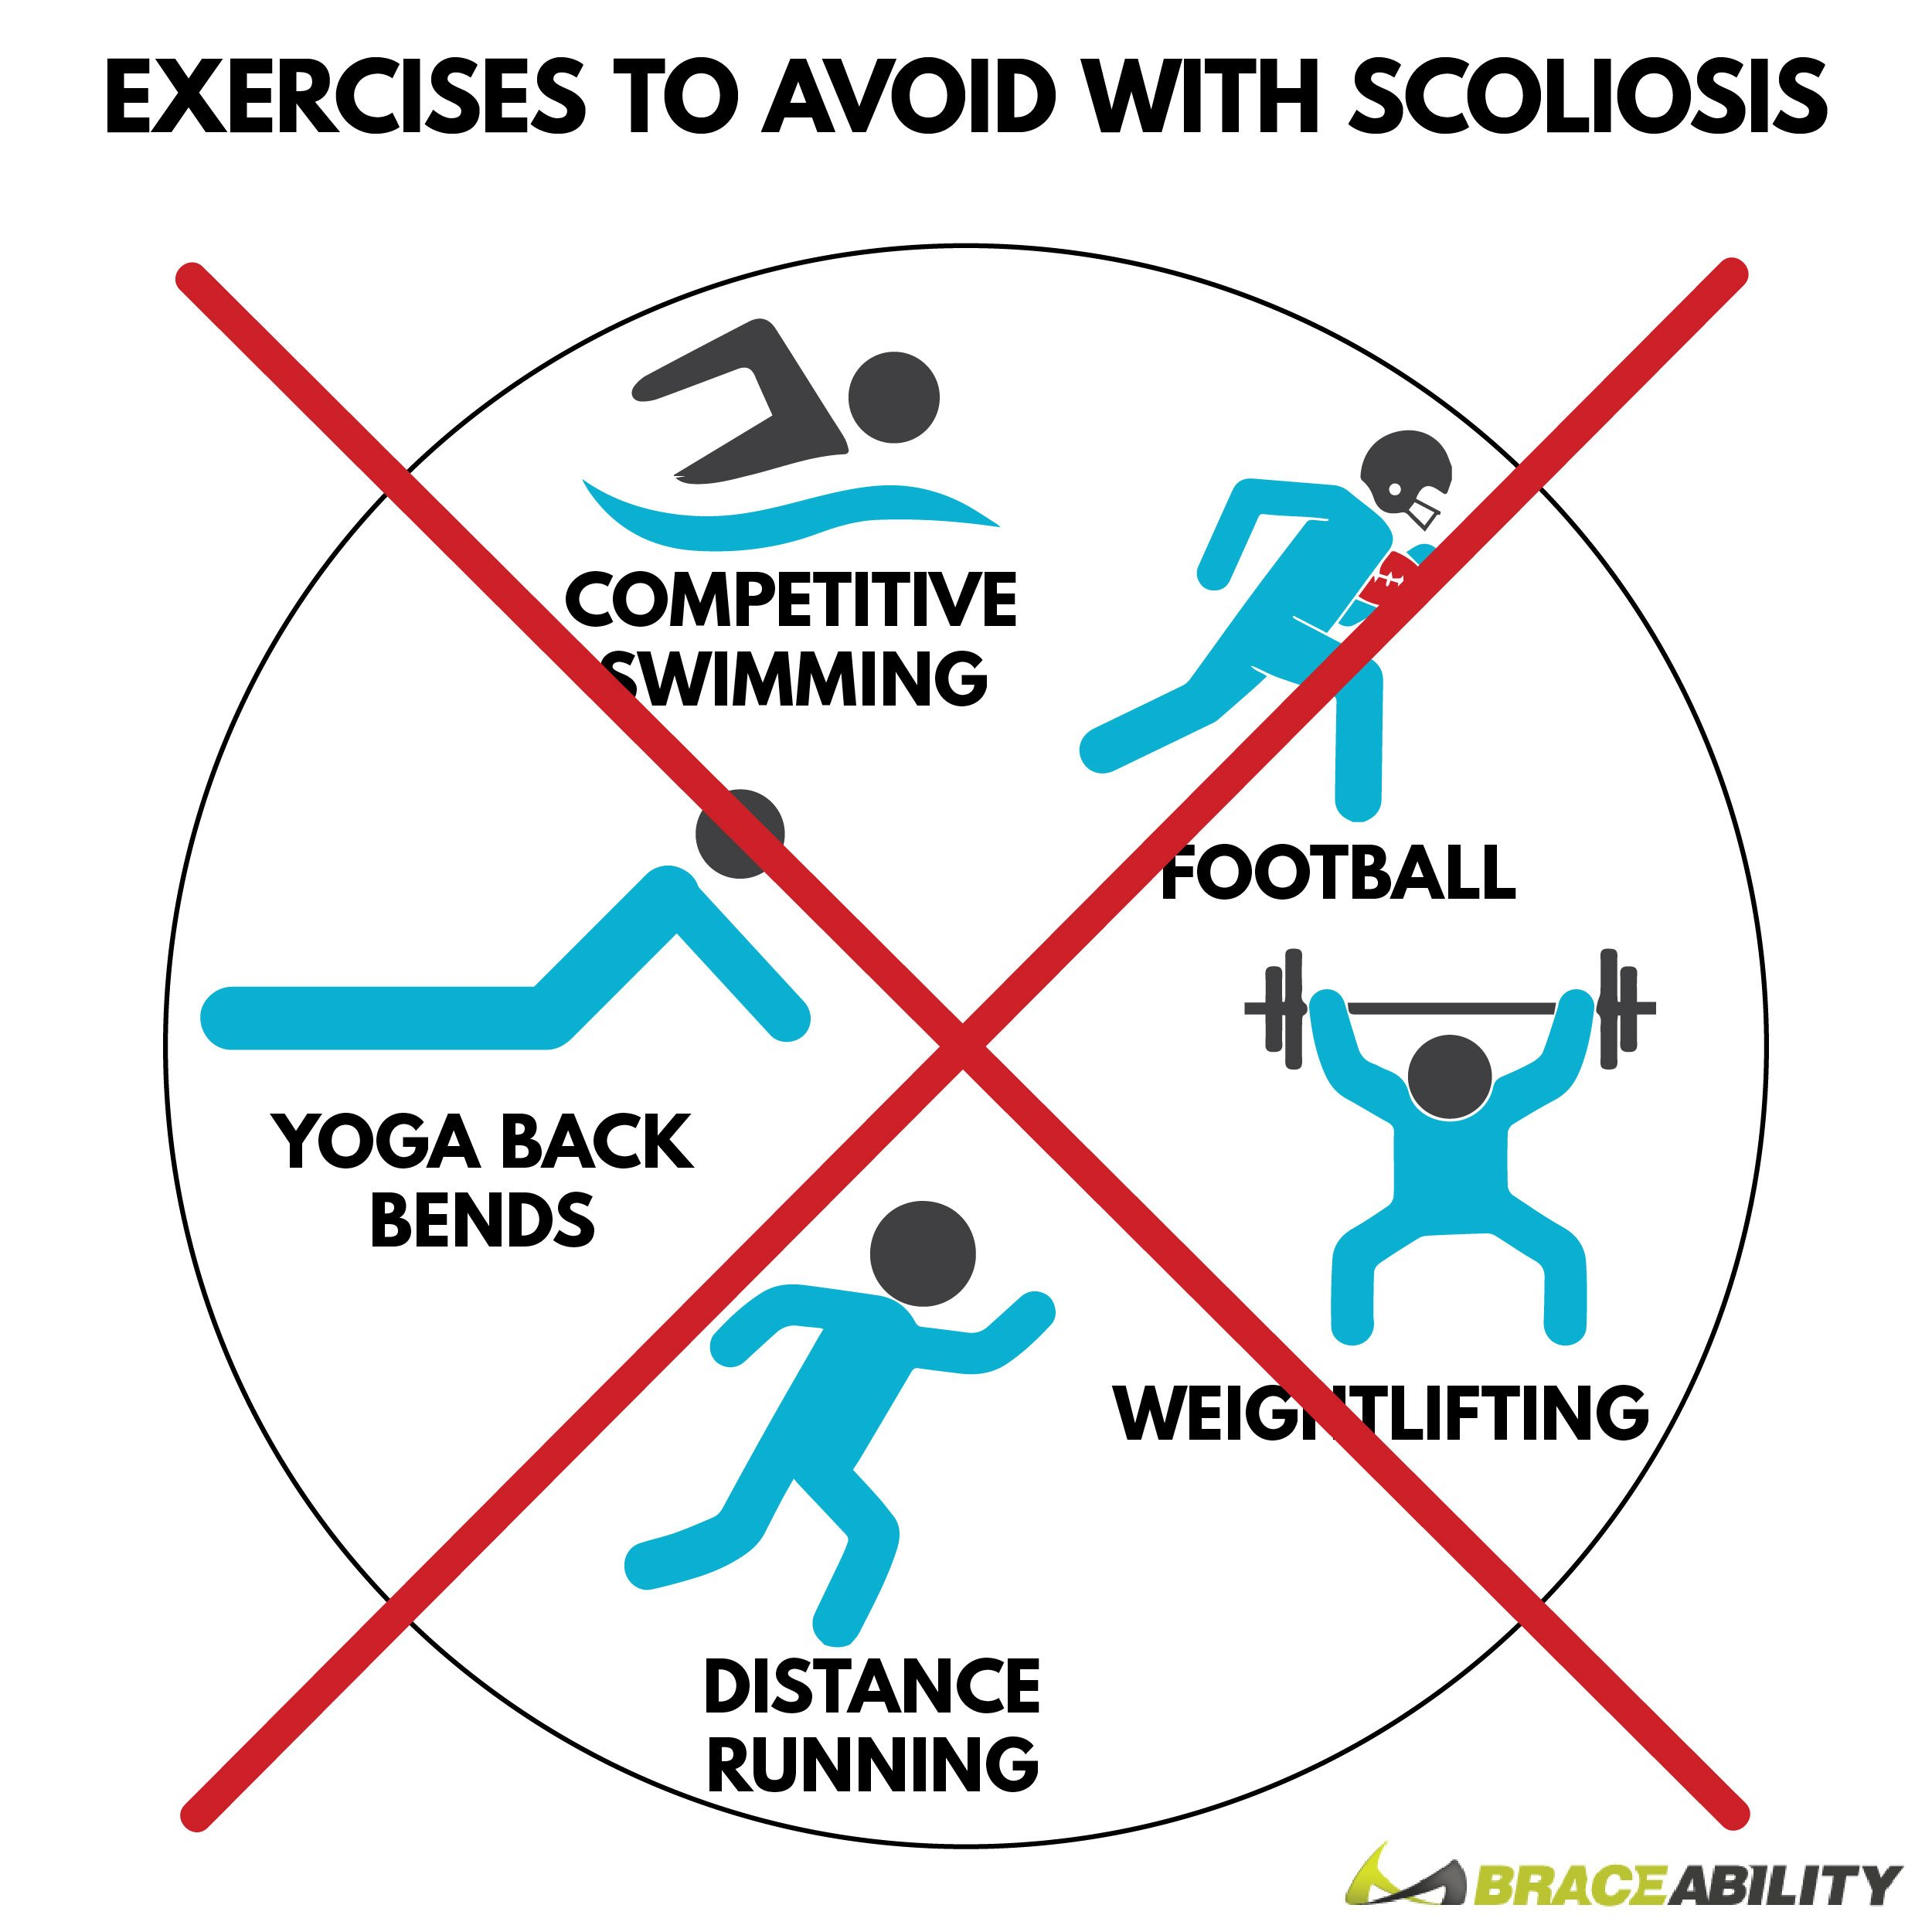 Exercises to avoid with Scoliosis